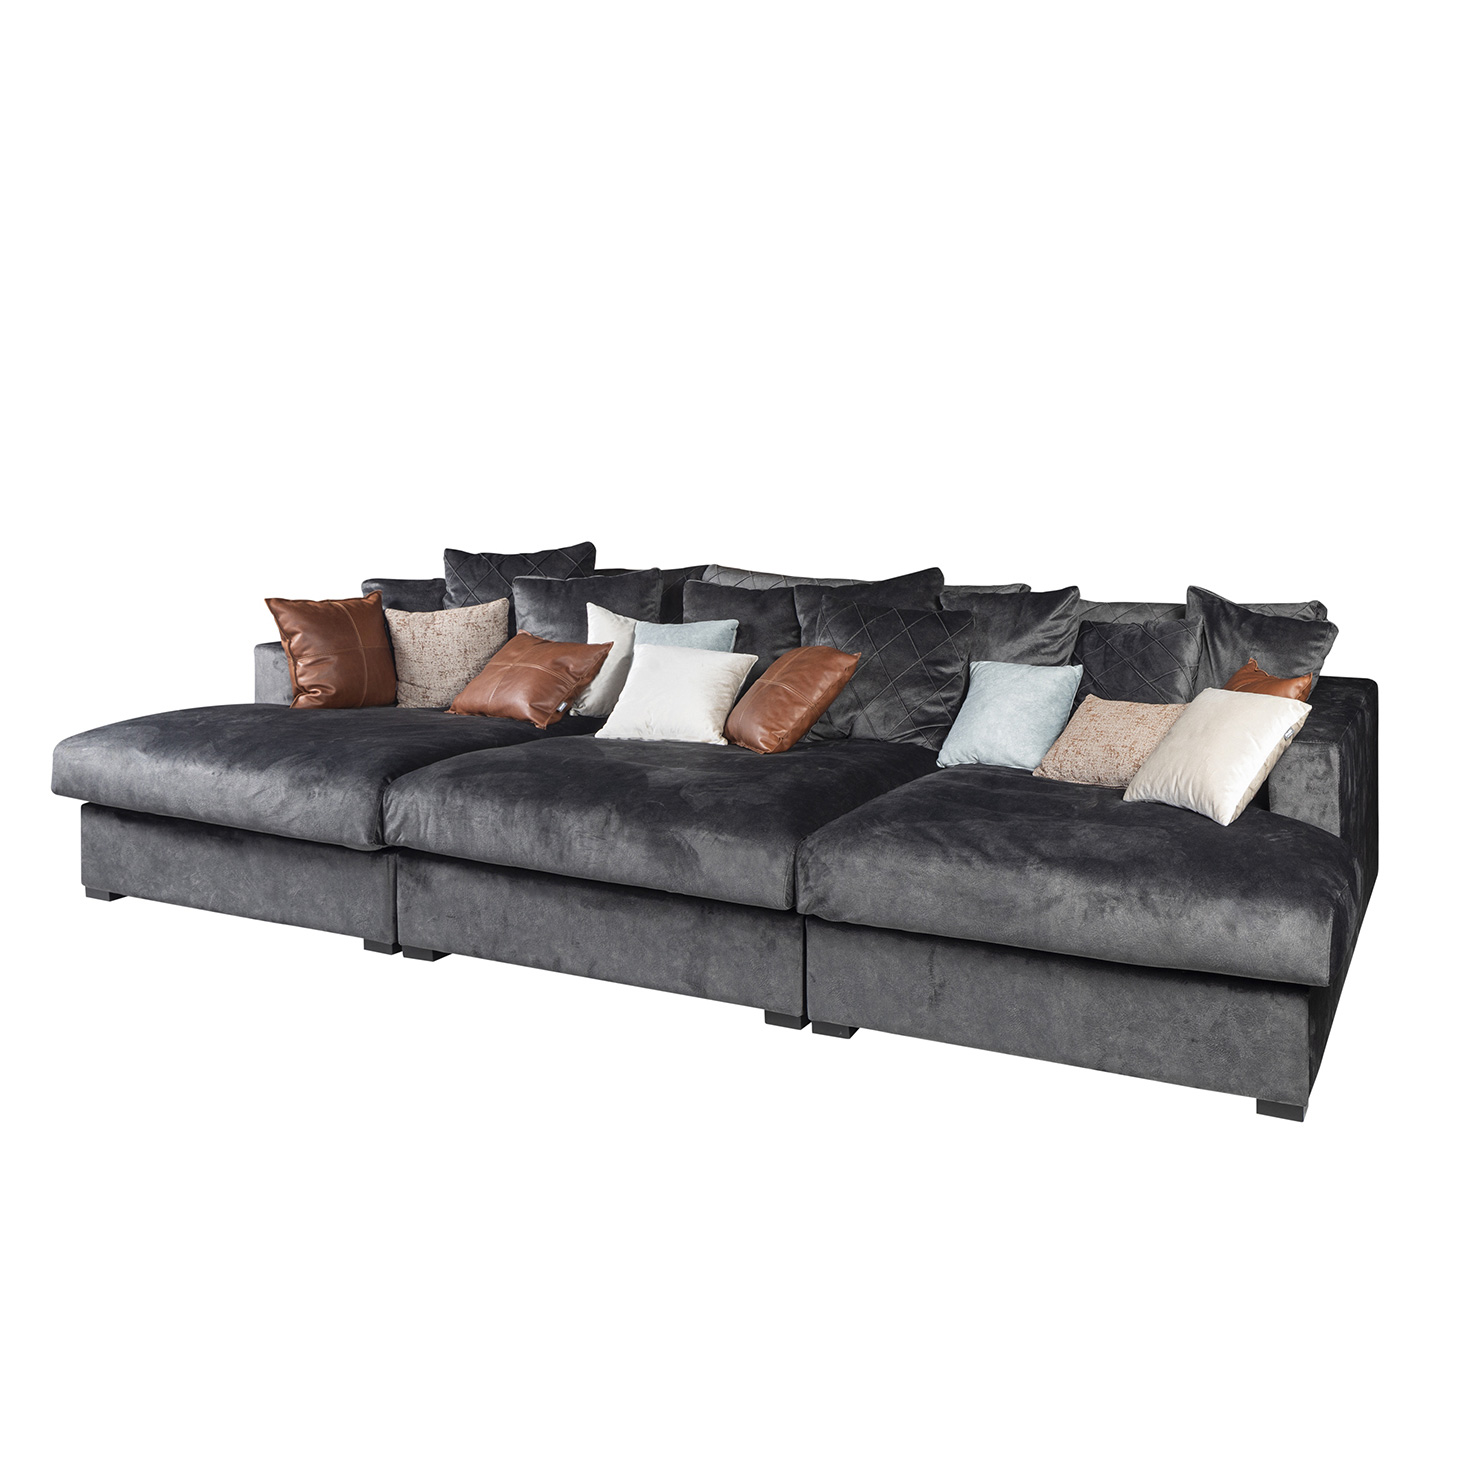 Urban Sofa Banken Edgar Pmp Furniture B V